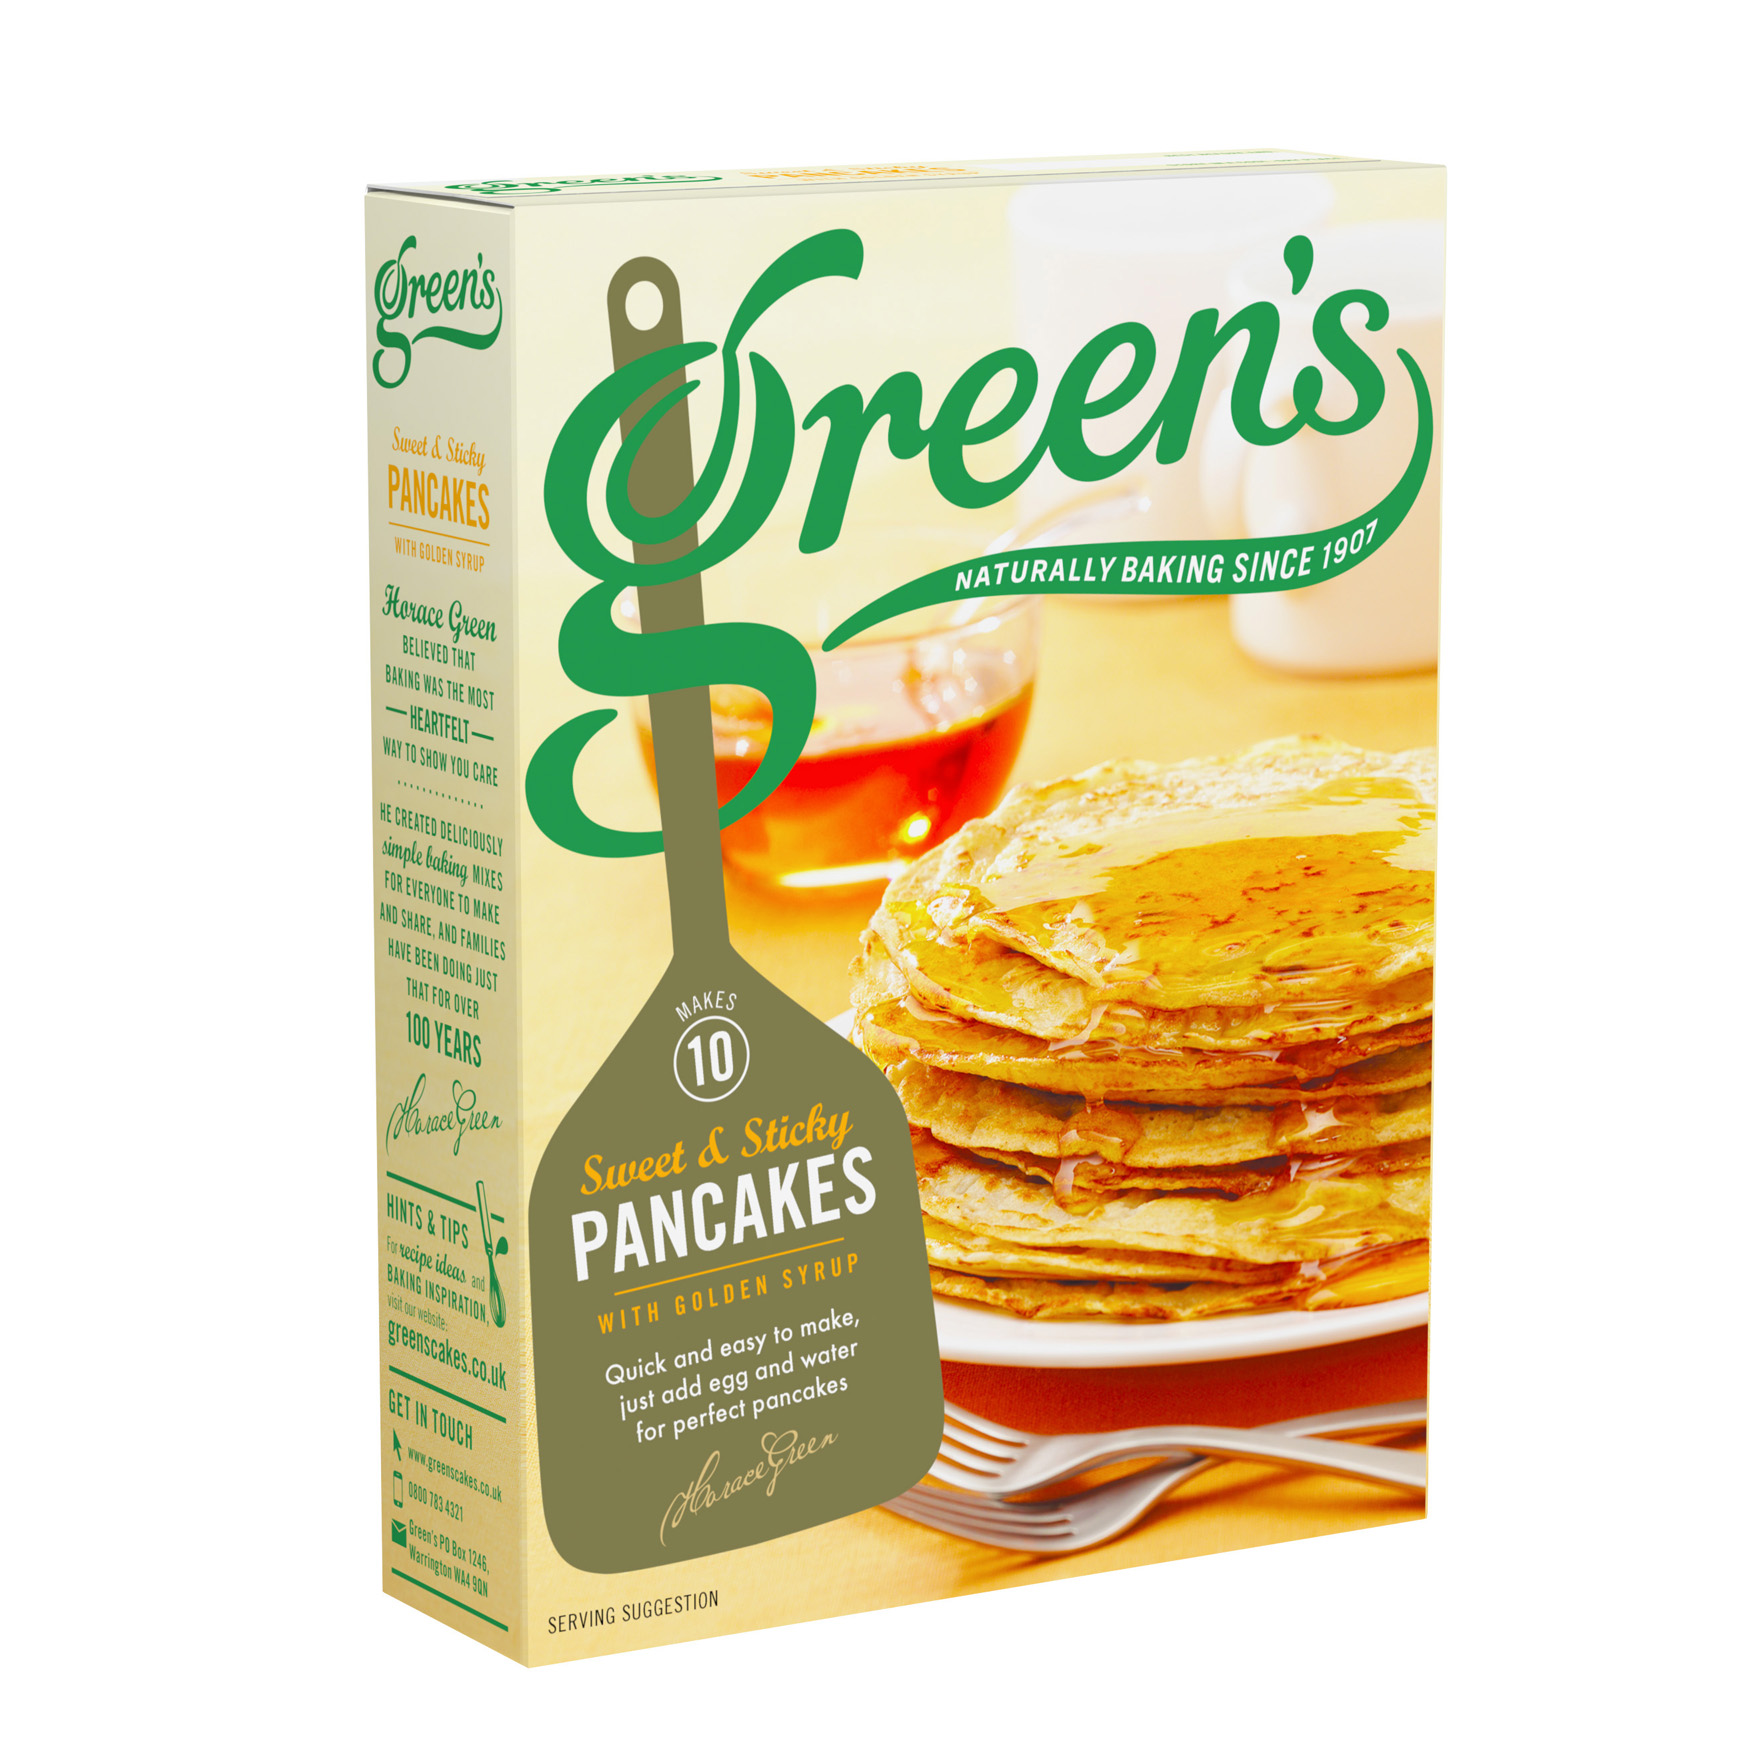 Pancakes with Golden Syrup Packaging Front